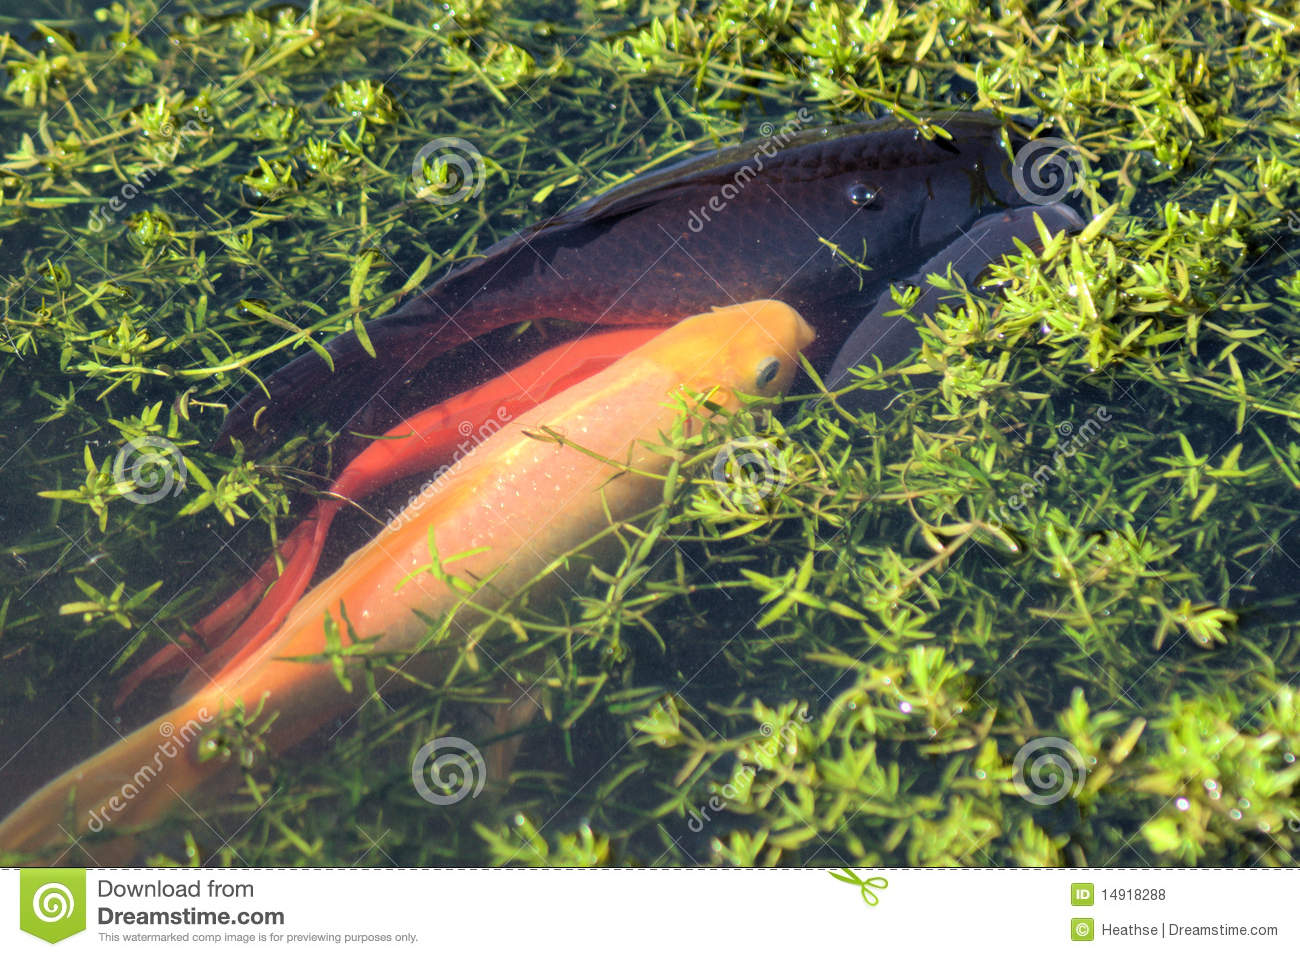 Huddle of fish spawning royalty free stock photos image for Colorful pond fish